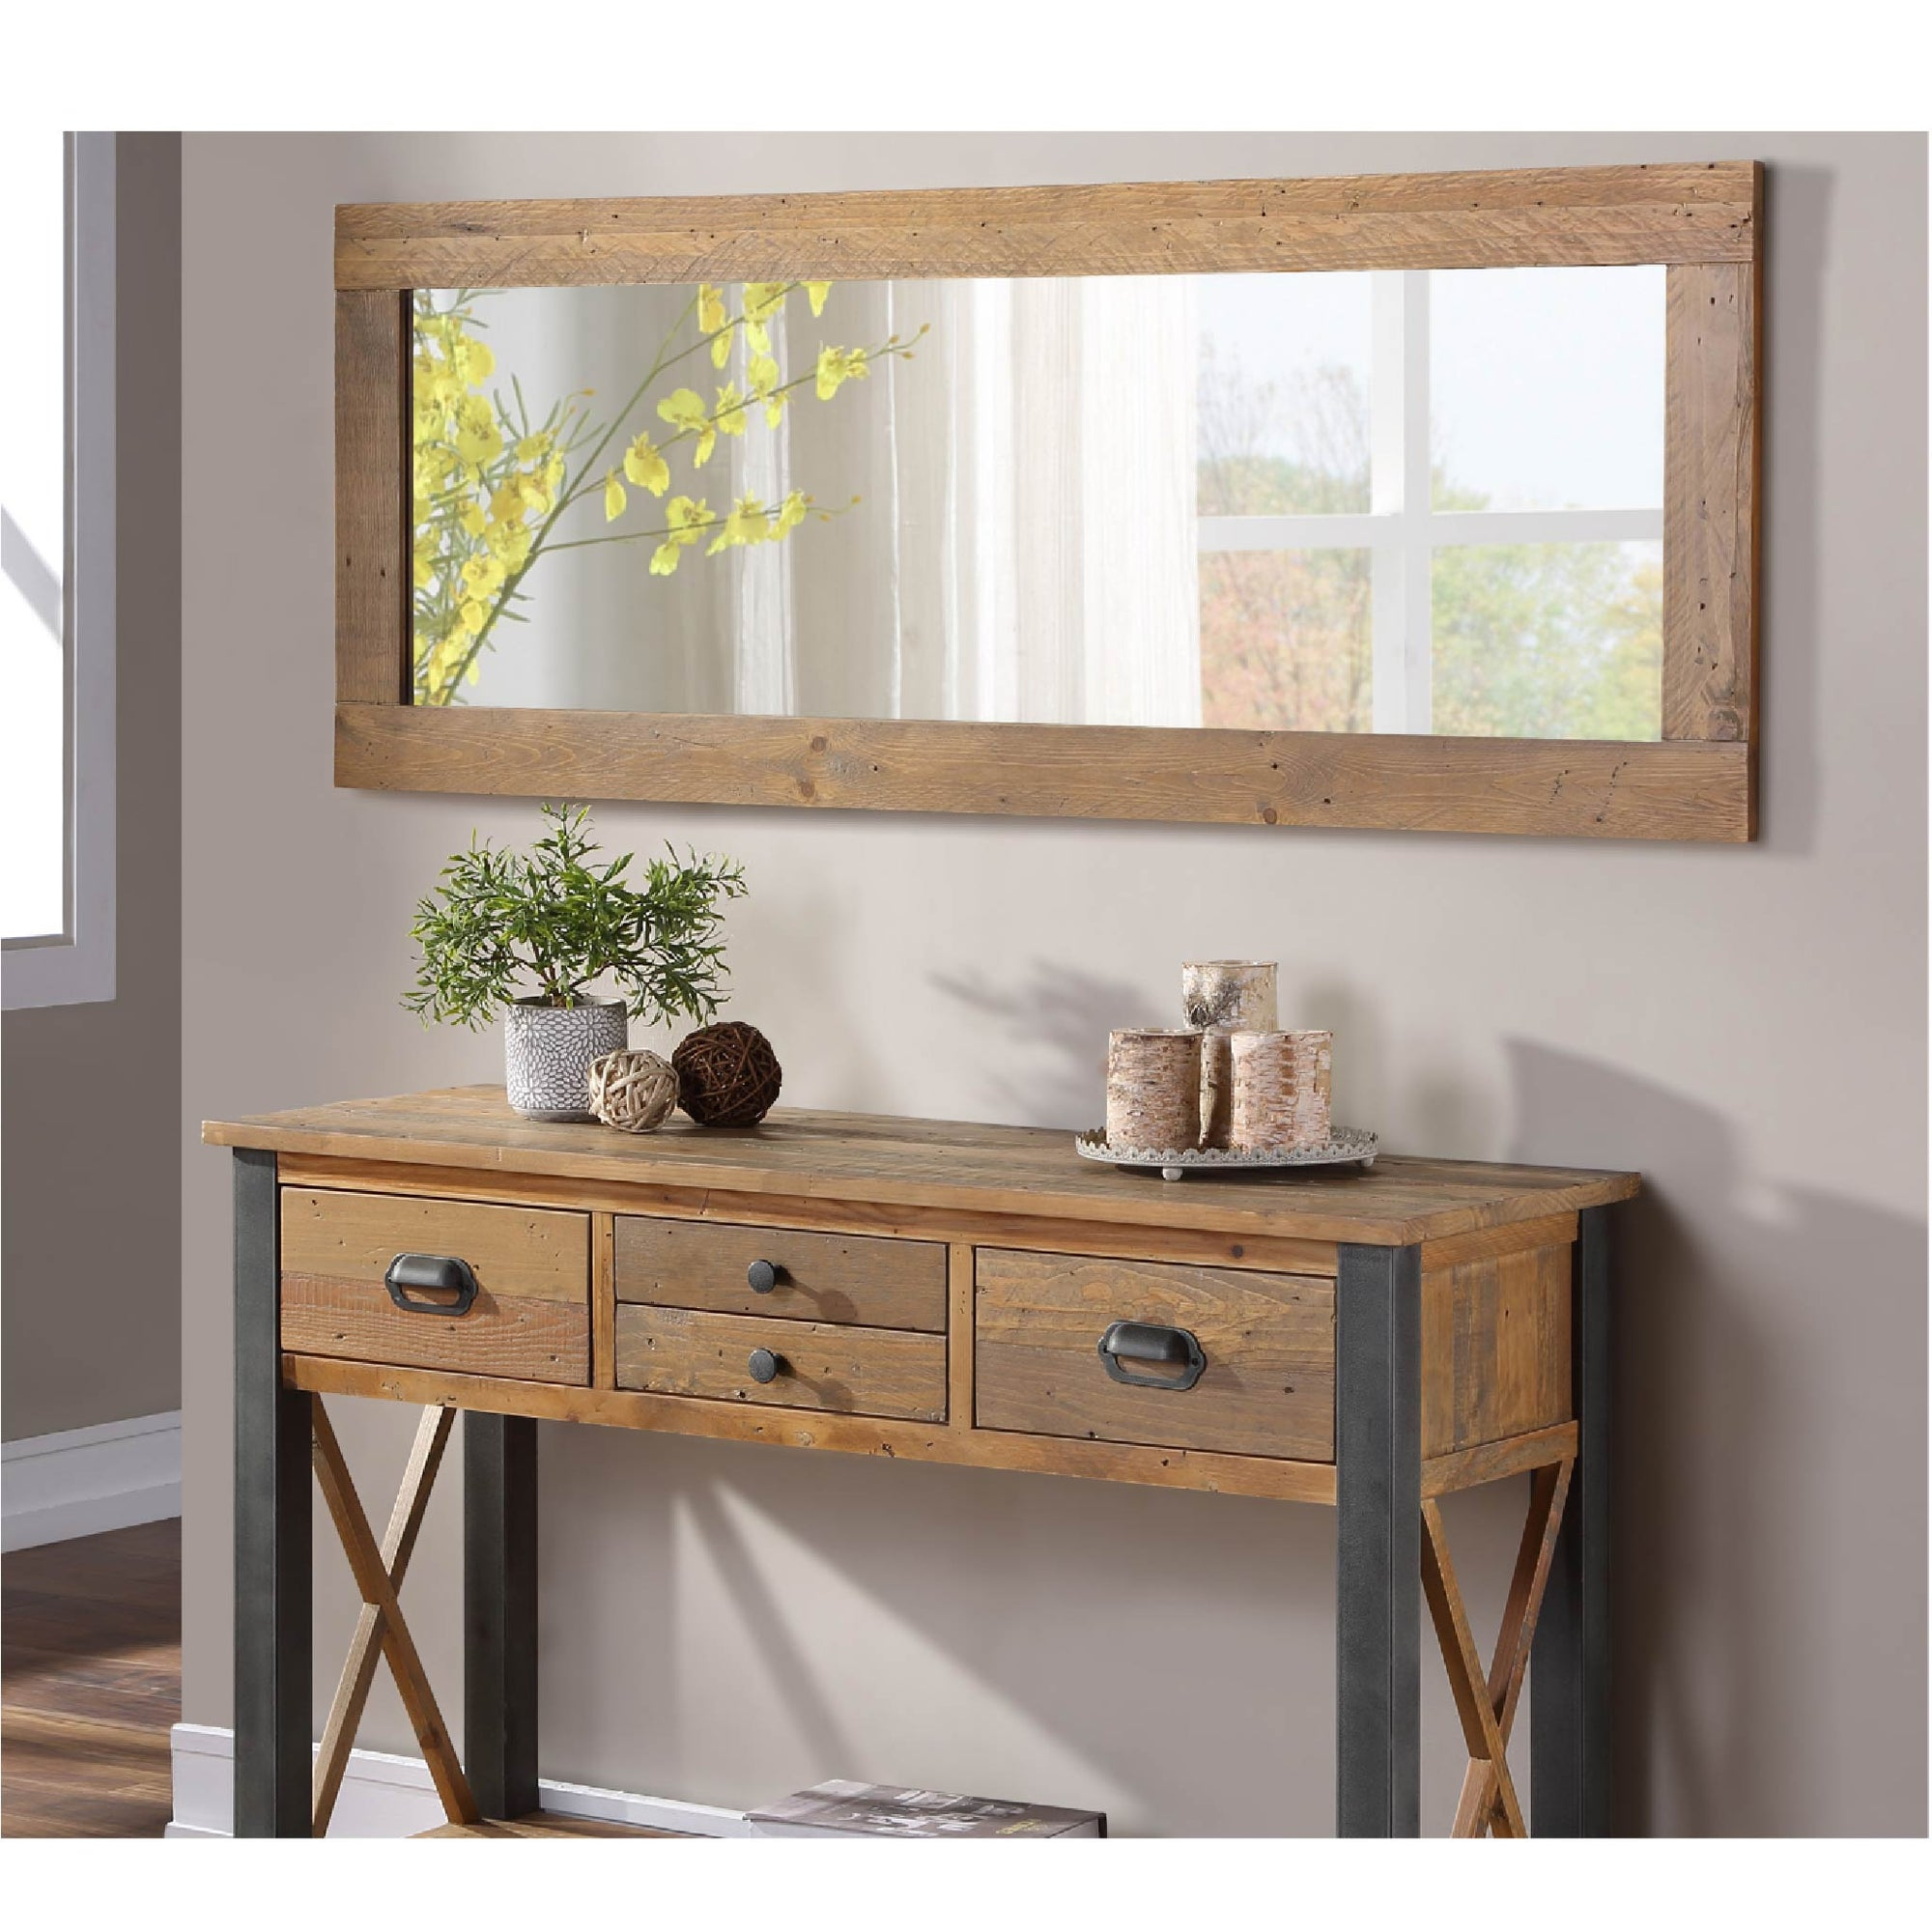 Oak & Painted Dressing Table Mirrors